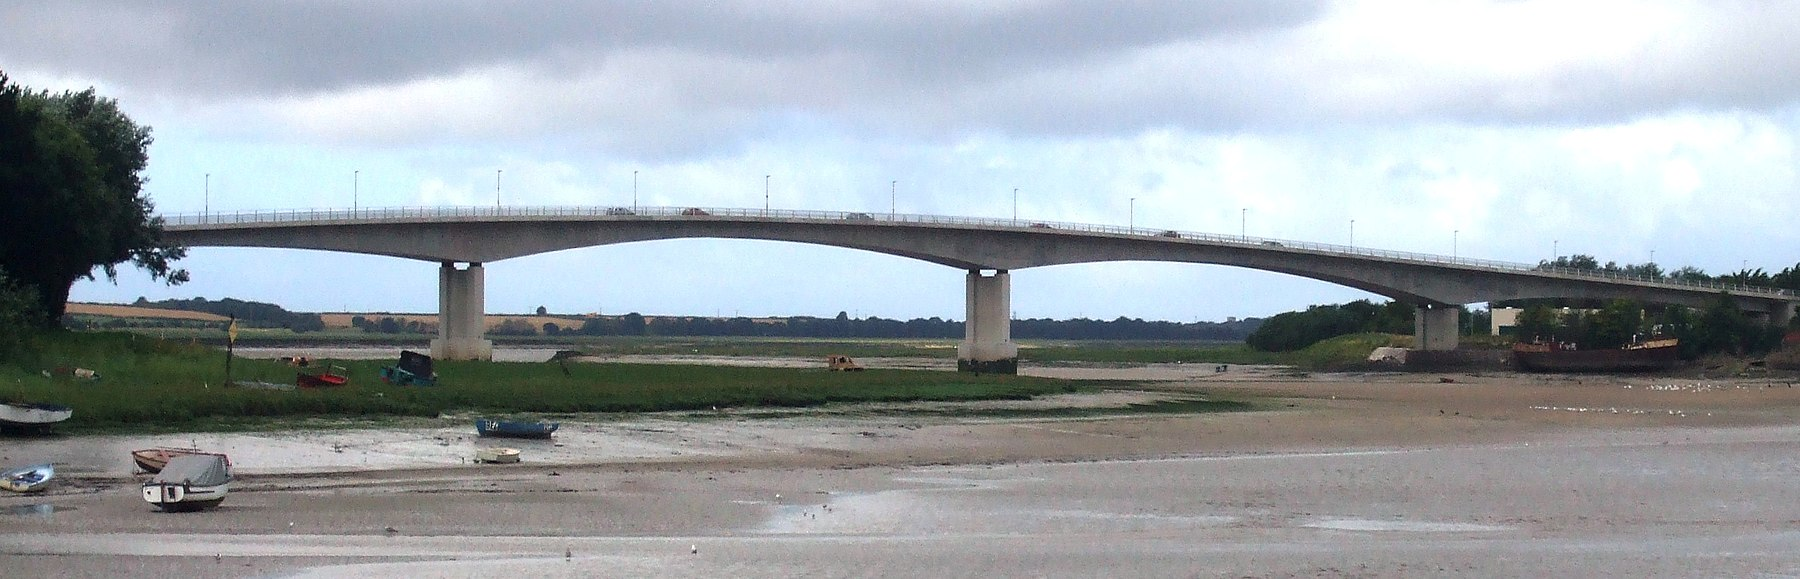 Taw Bridge.JPG